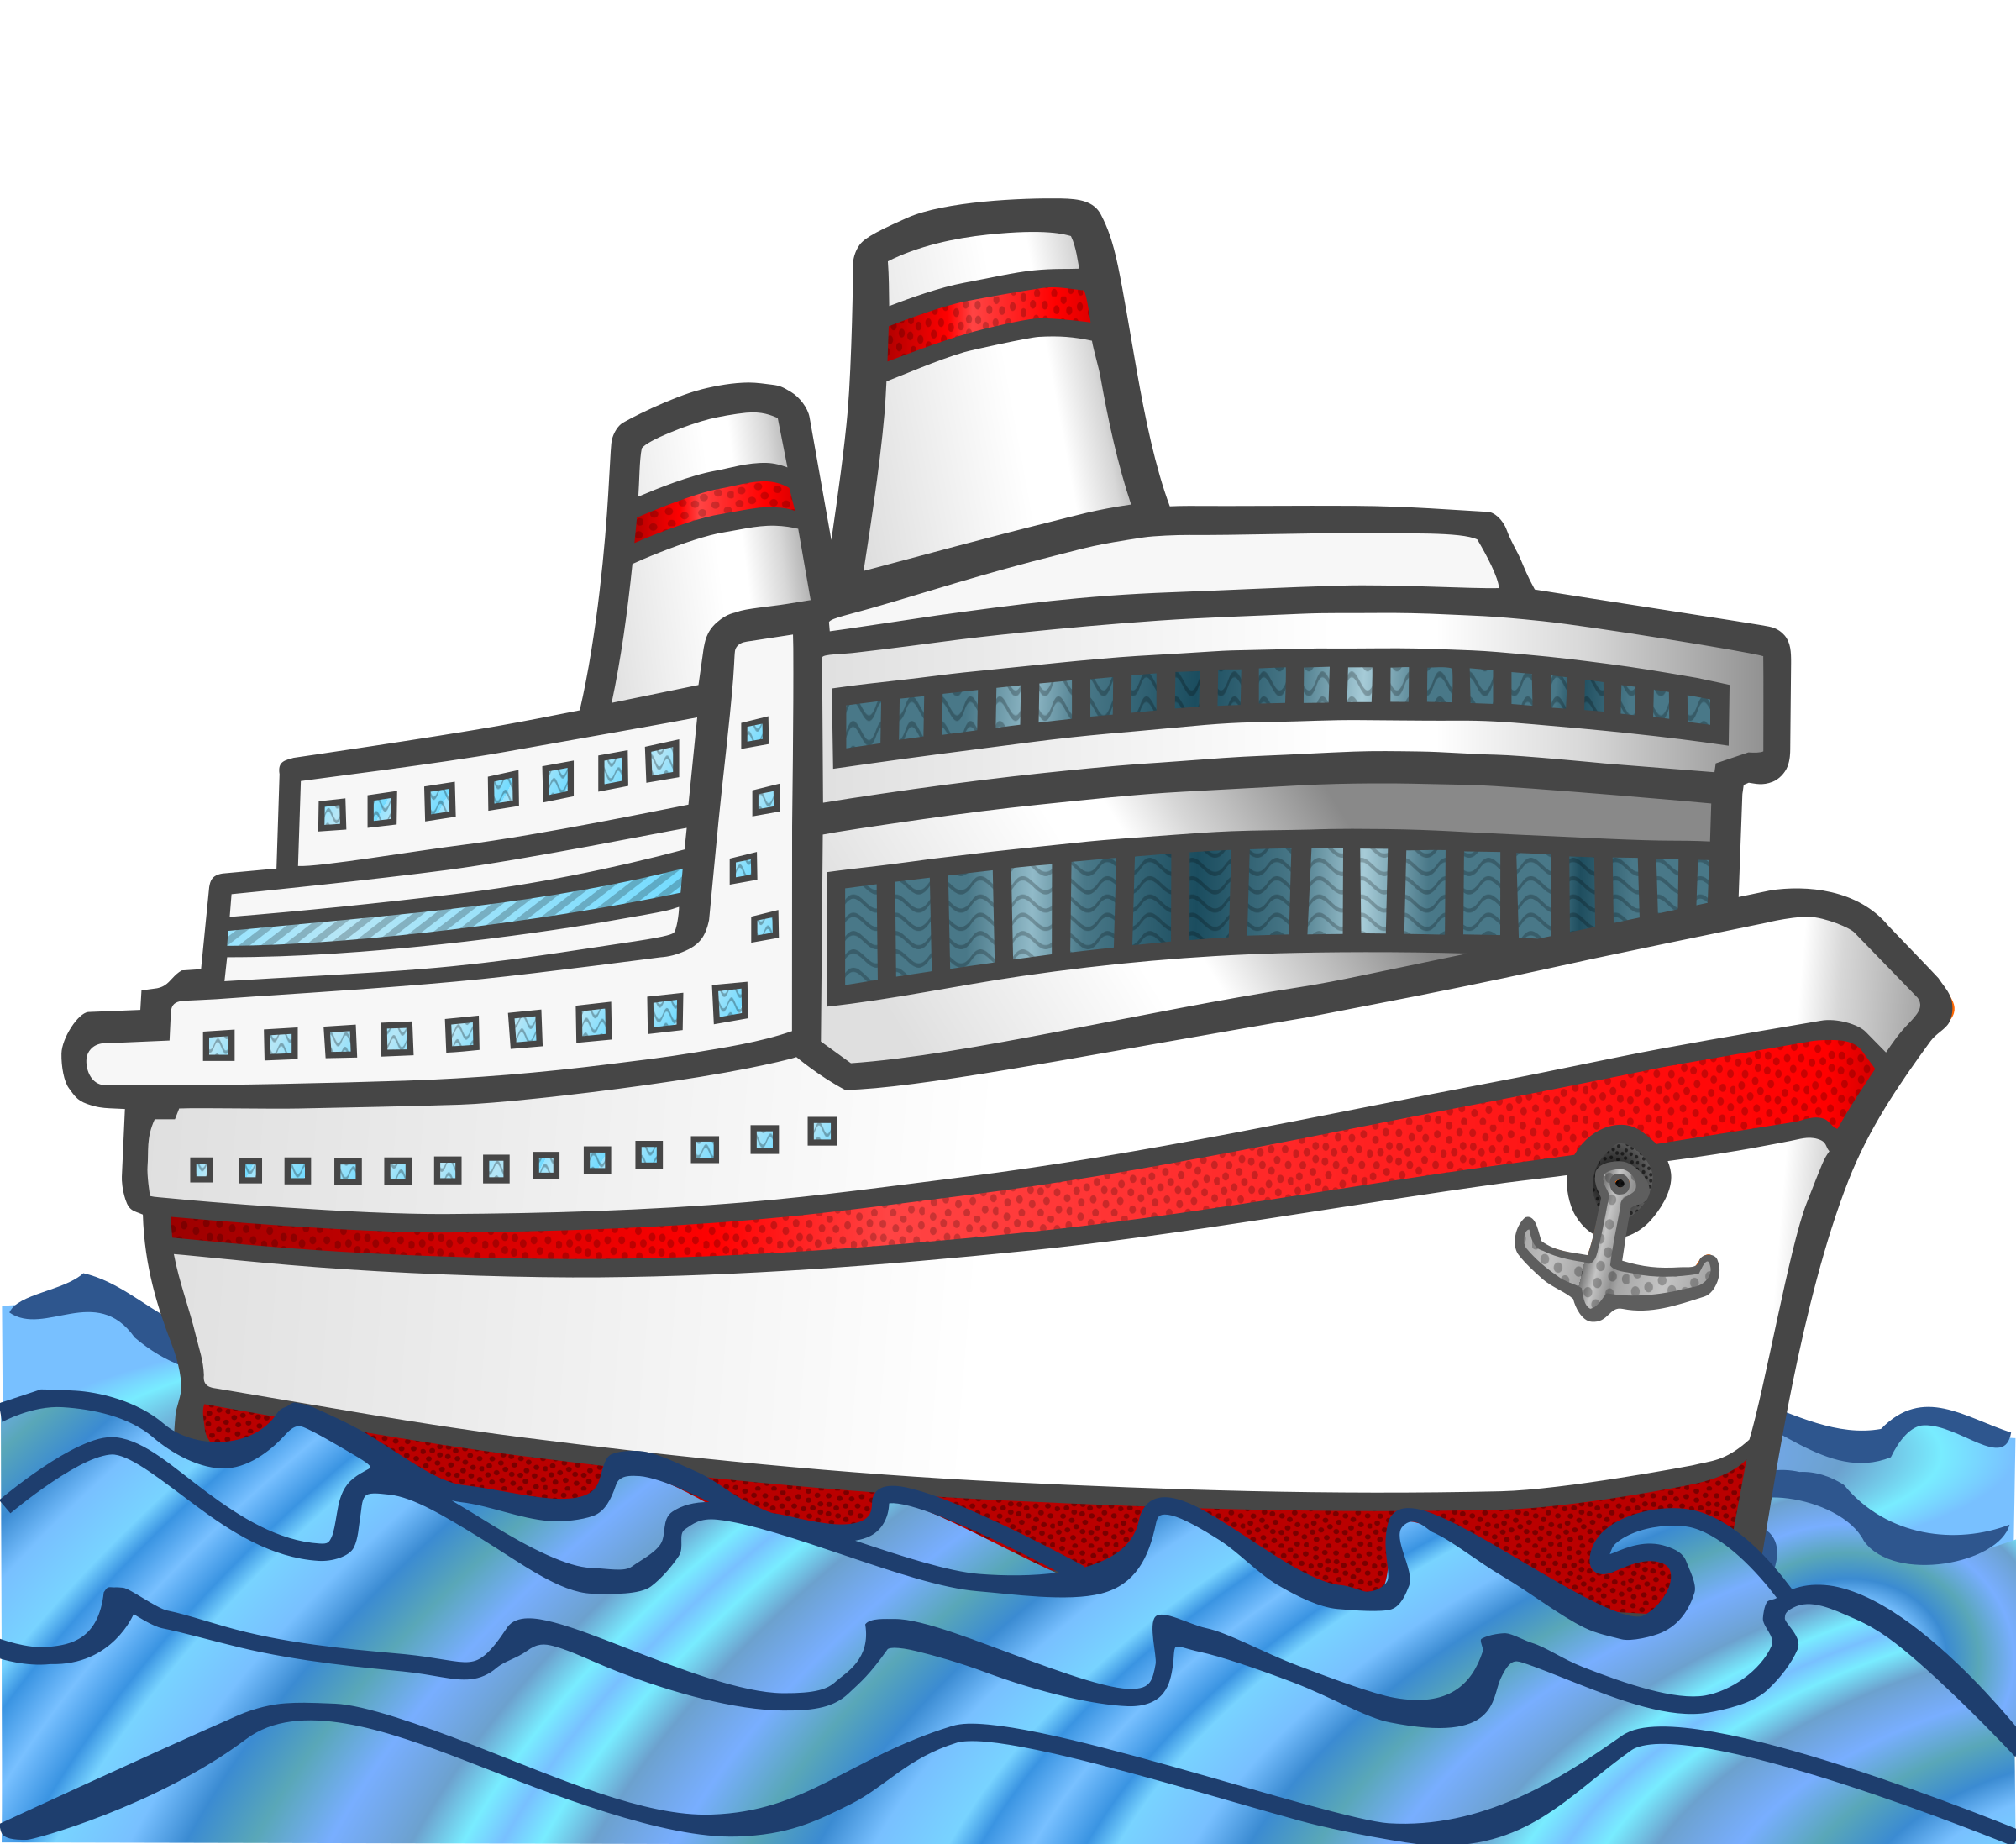 Free Ship Cliparts, Download Free Clip Art, Free Clip Art on.